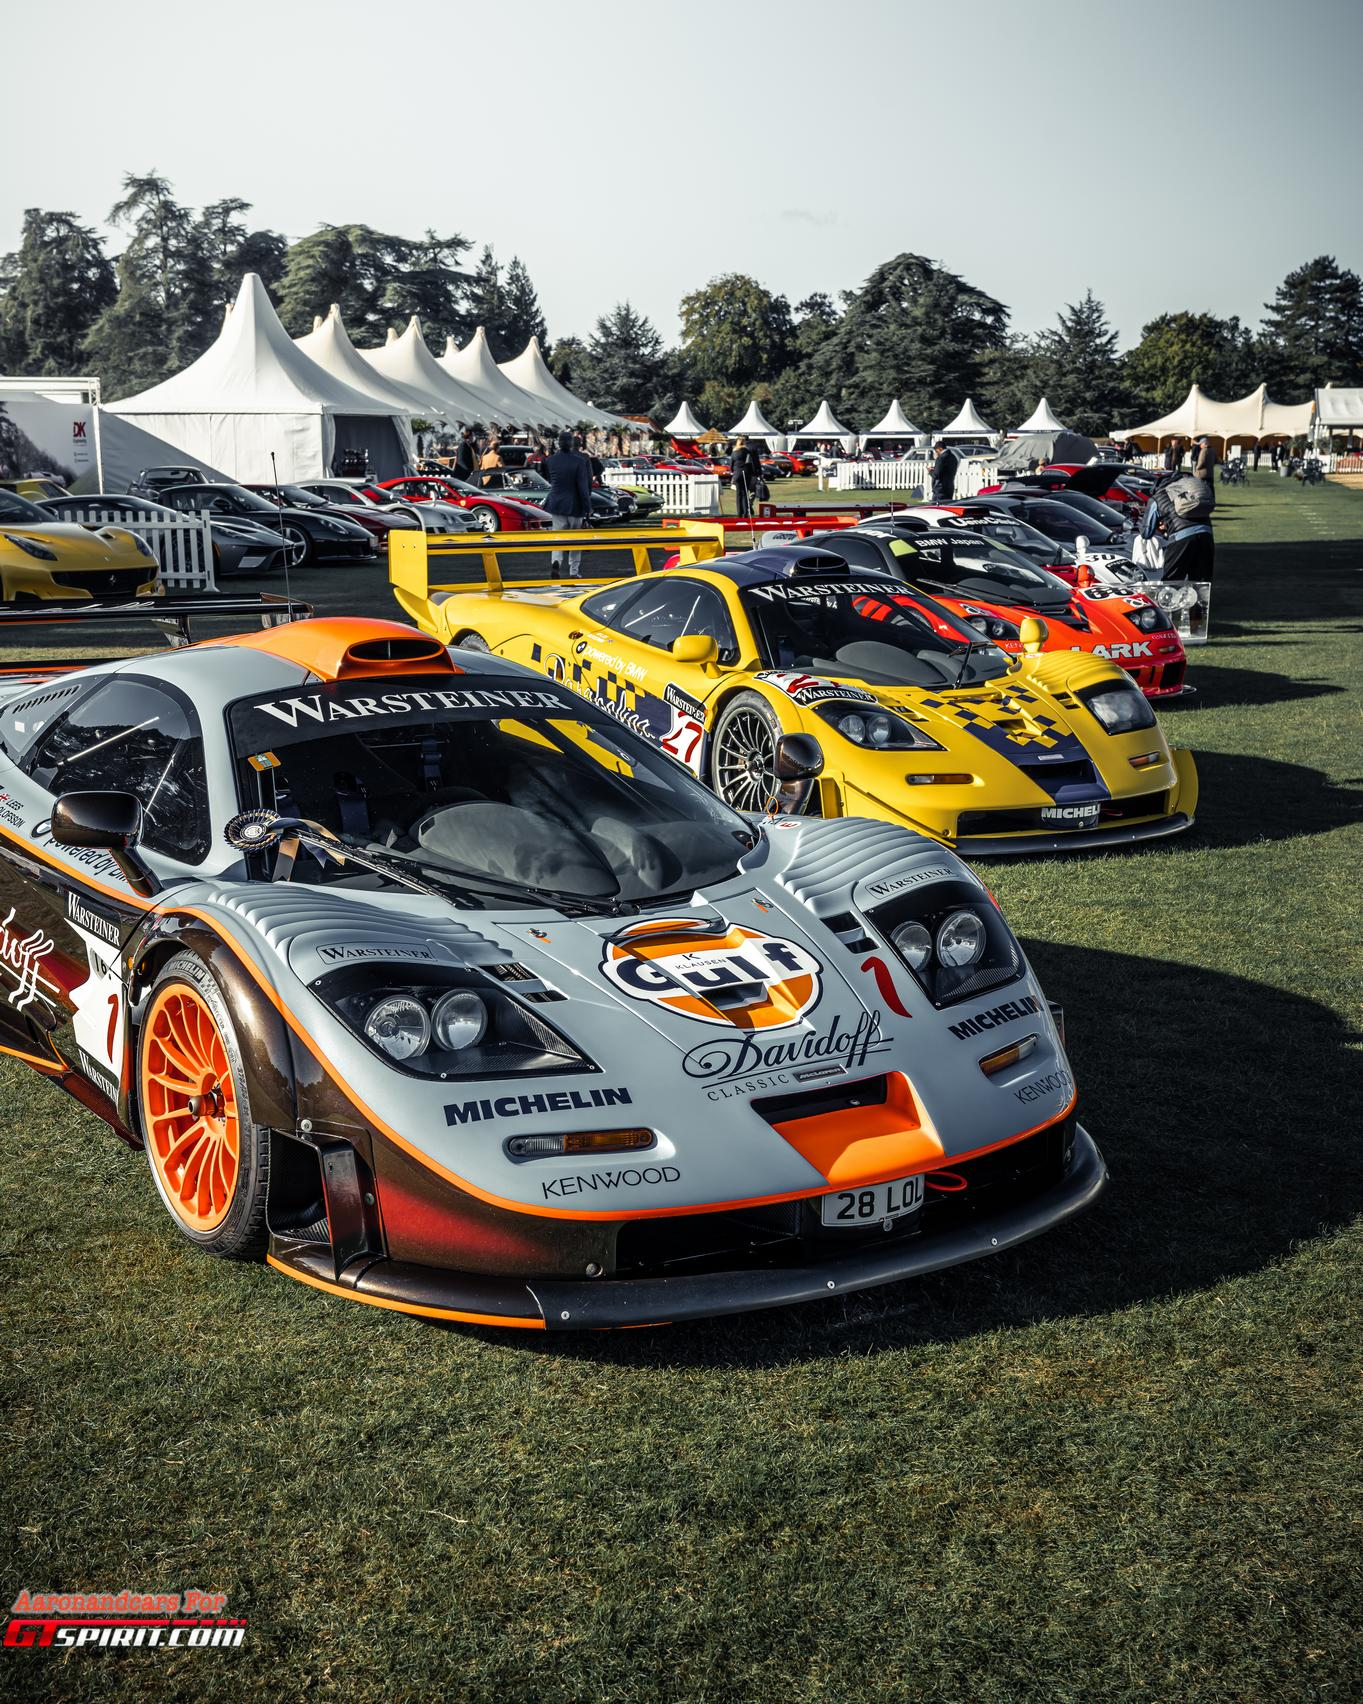 Salon Prive 2020 McLaren F1